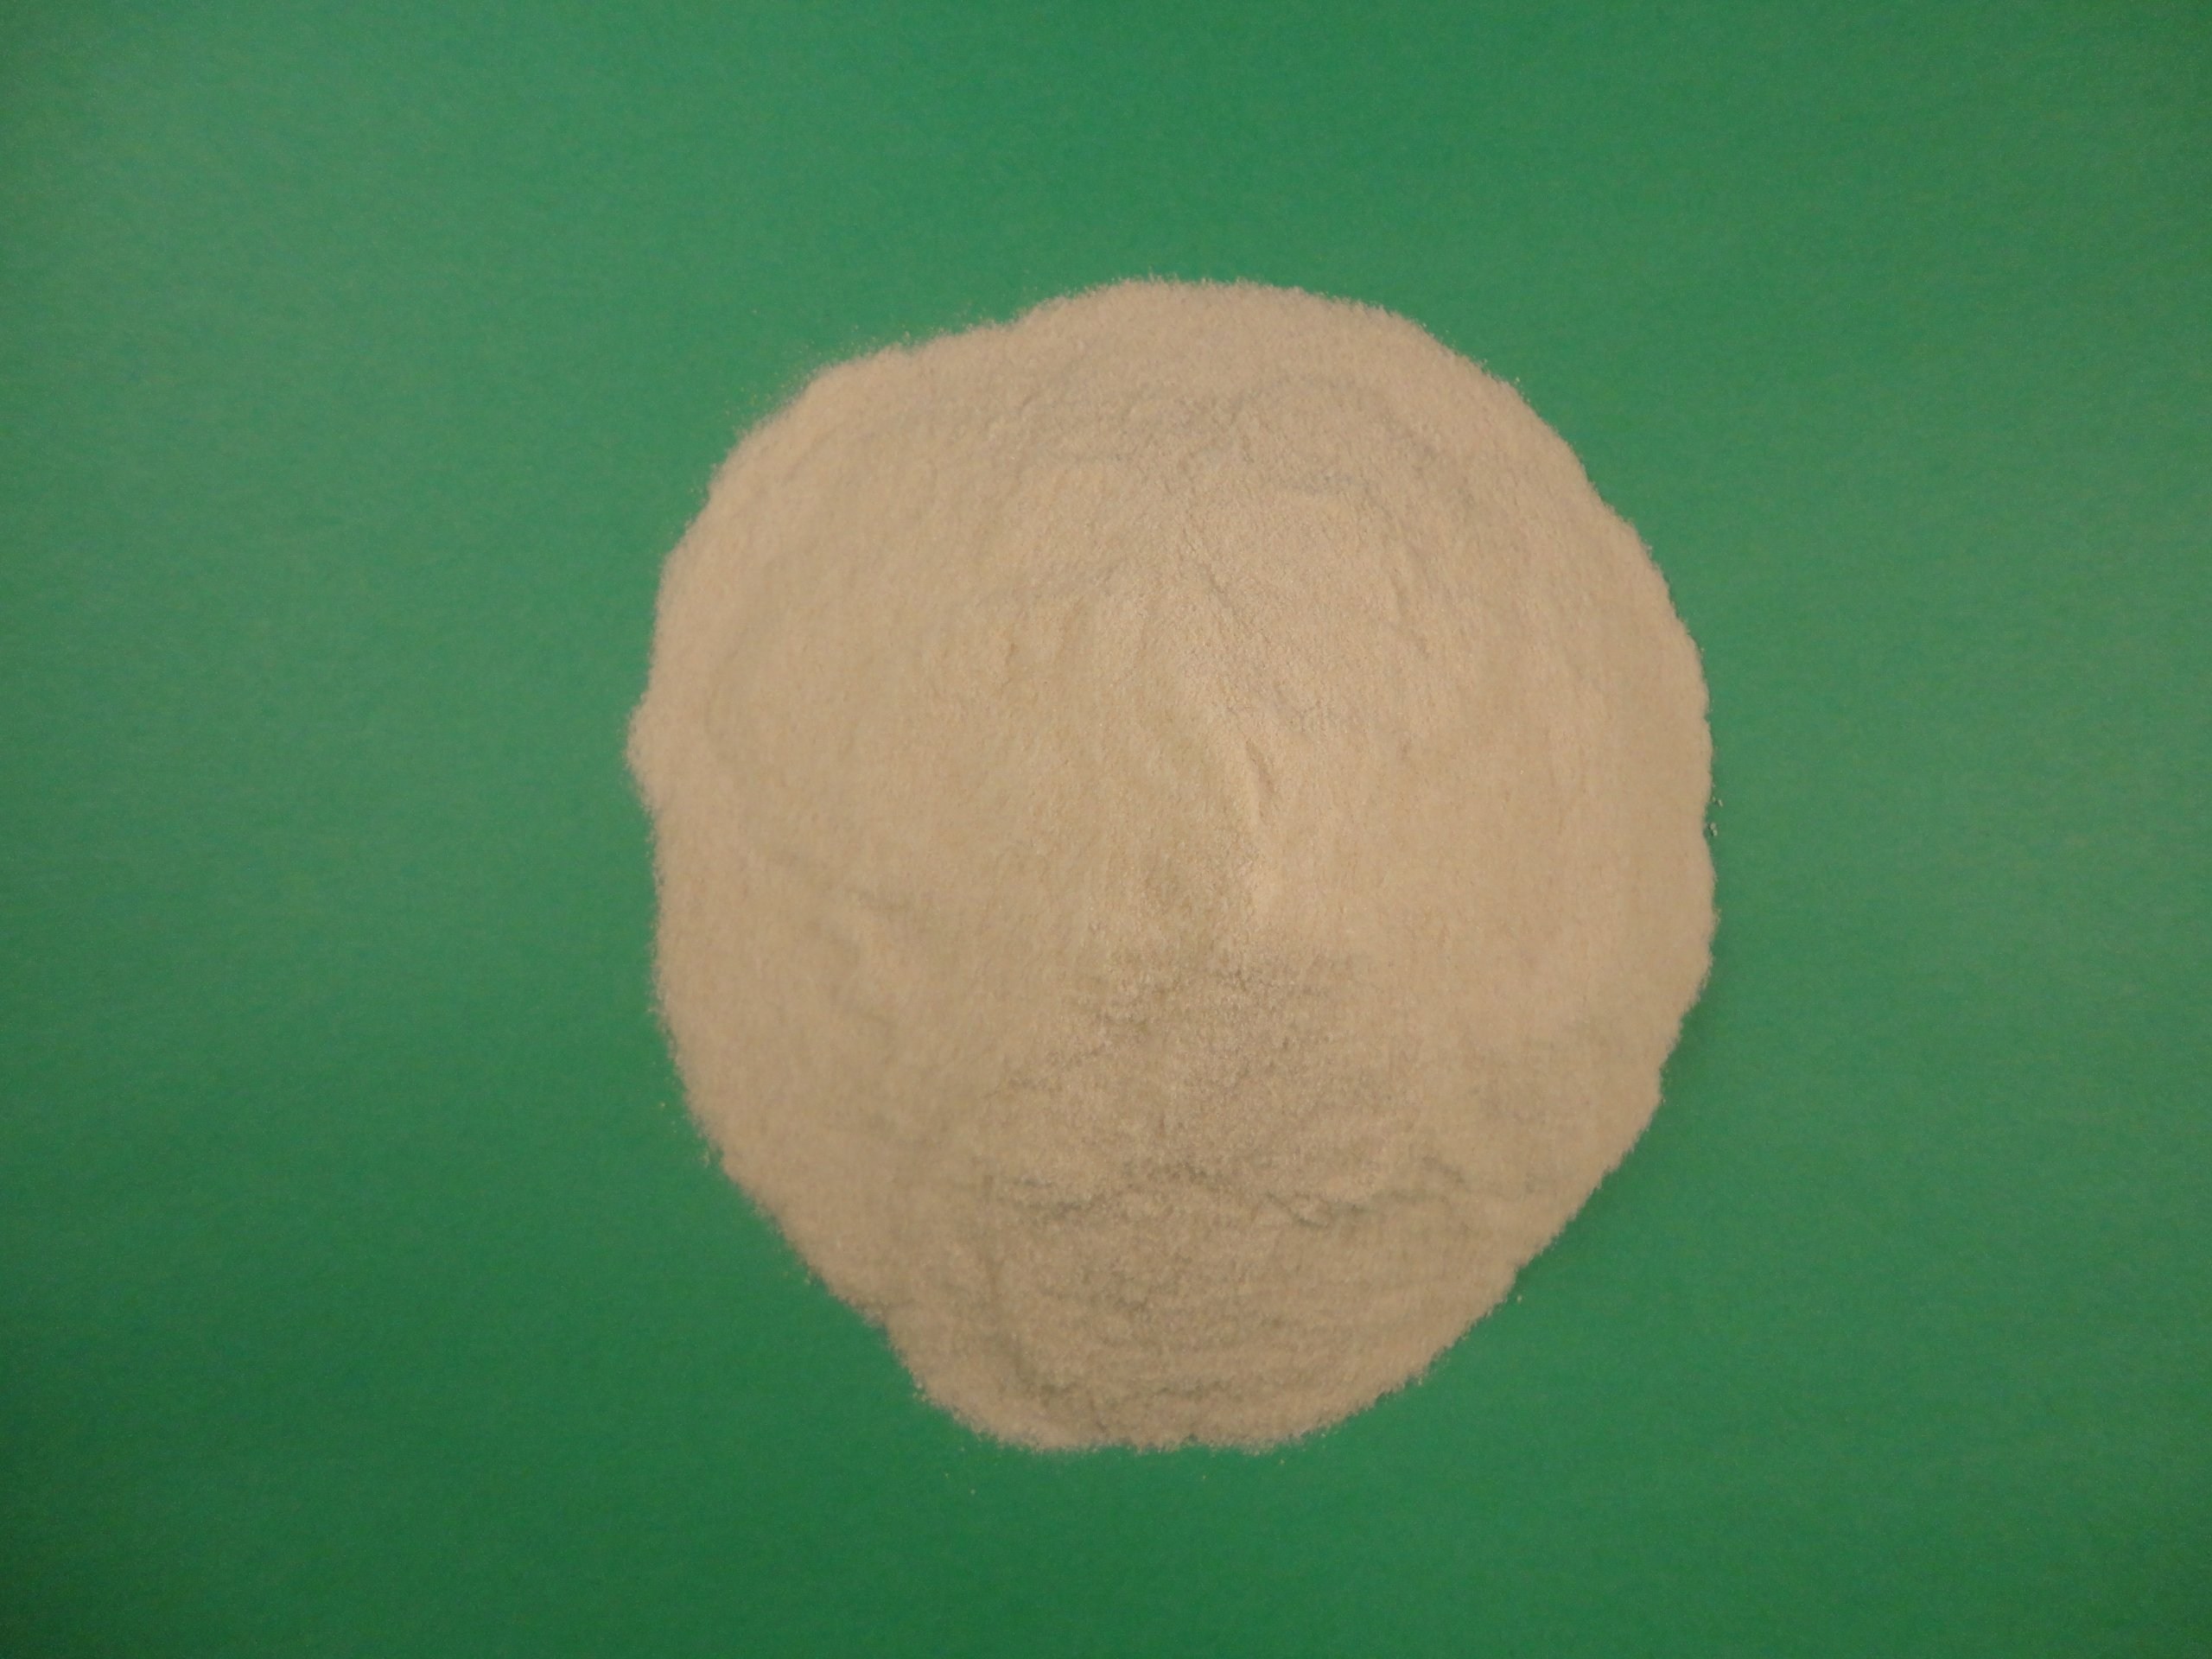 Agar Agar Powder - 5 Pounds, Excellent Gel Strength 900g/cm2!!! by The Seaweed Solution (Image #1)